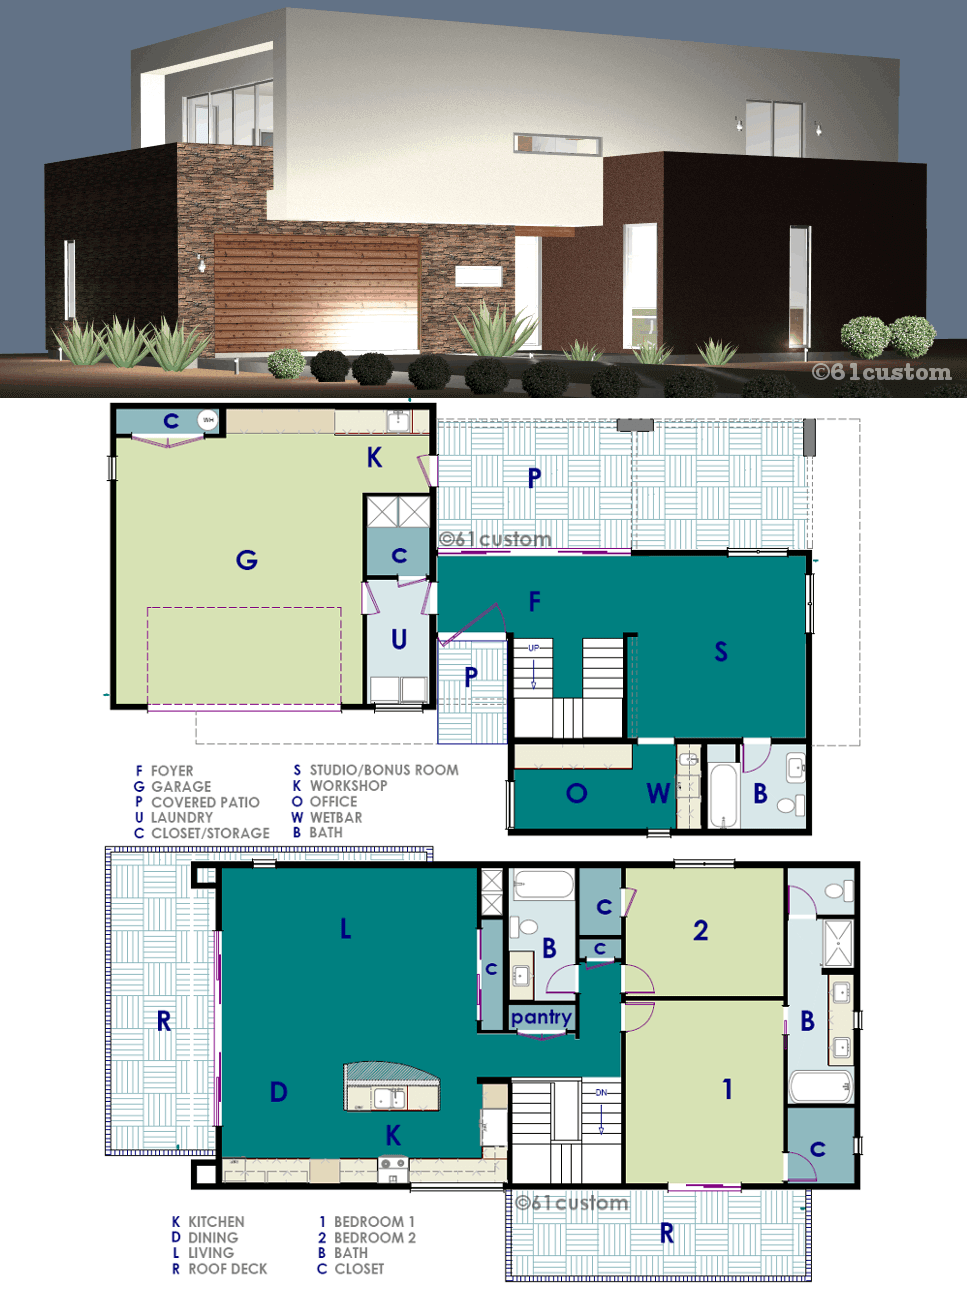 Ultra modern live work house plan 61custom for New custom home plans